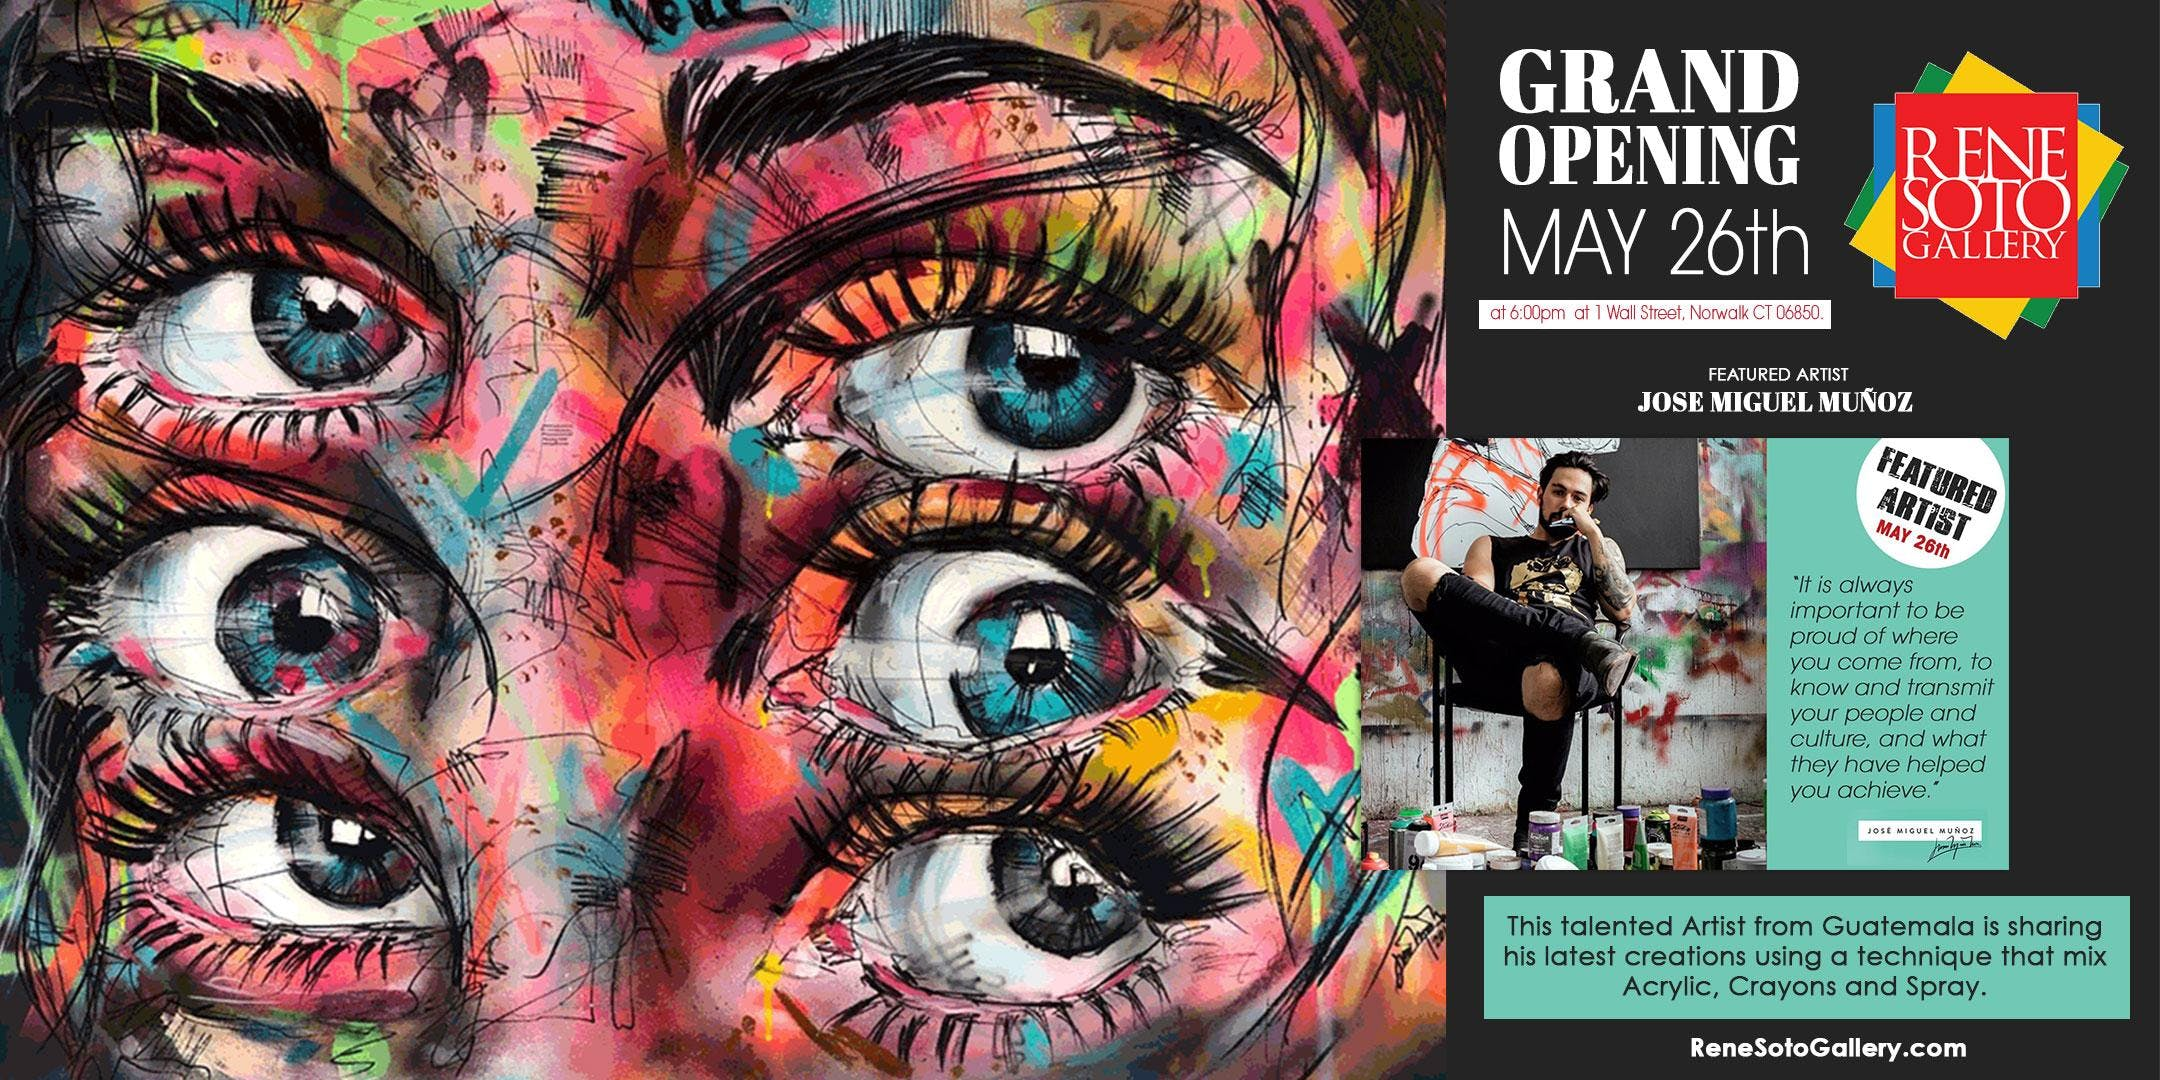 Rene Soto Gallery - Grand Opening May 26th